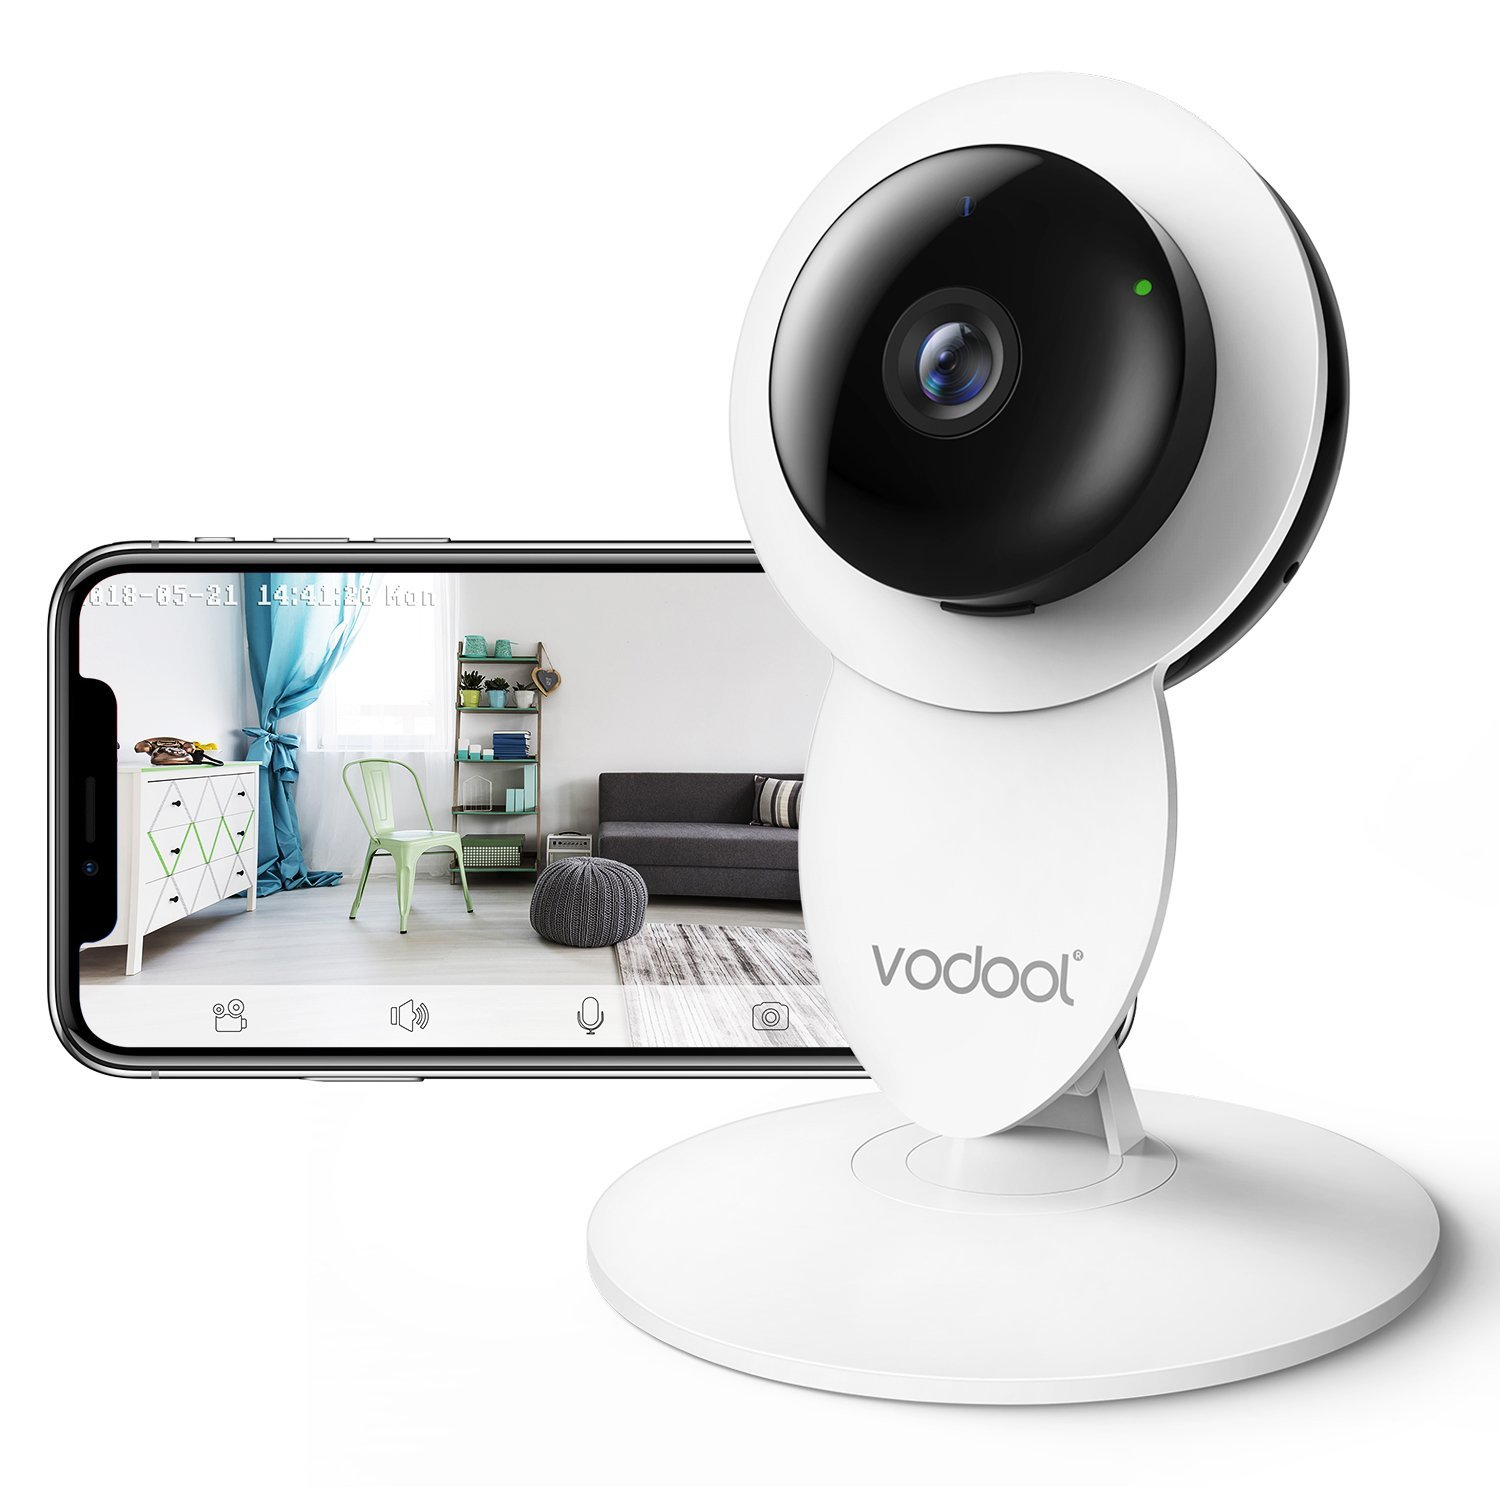 Vodool 1080p Home Camera, Indoor IP Surveillance Home Security Camera on mobile home storage, mobile home alarm systems, mobile surveillance cameras, wireless security cameras, mobile home parking, mobile home tools, mobile home intercom systems, barn security cameras, mobile home signs, mobile home mirrors, mobile home electrical, mobile home insurance, mobile home thermostats, industrial security cameras, mobile home photography, lease security cameras, mobile home financing program, mobile home vehicles, car security cameras,